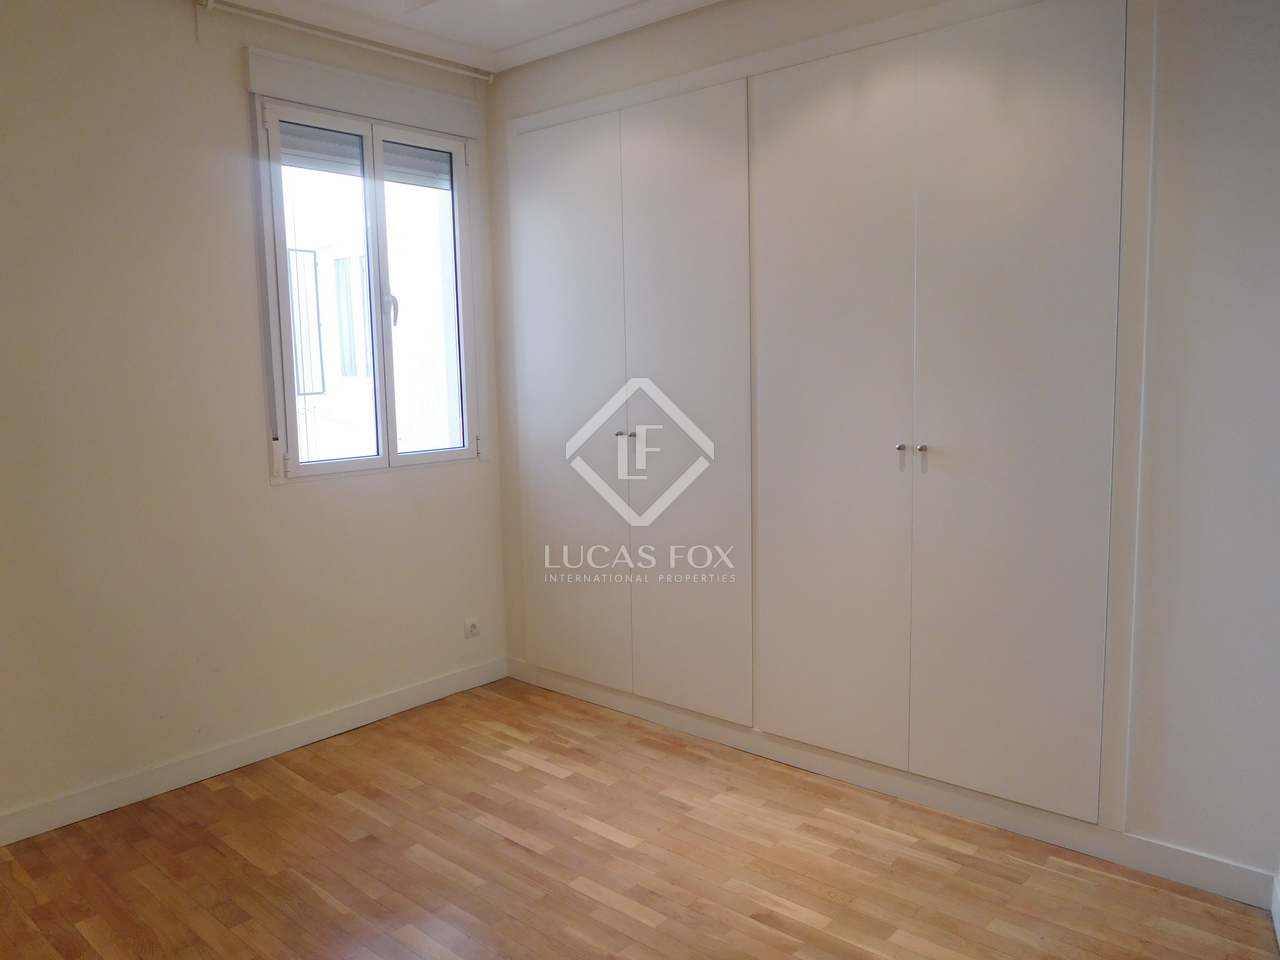 60m apartment for rent in justicia madrid for 7 bedroom apartment